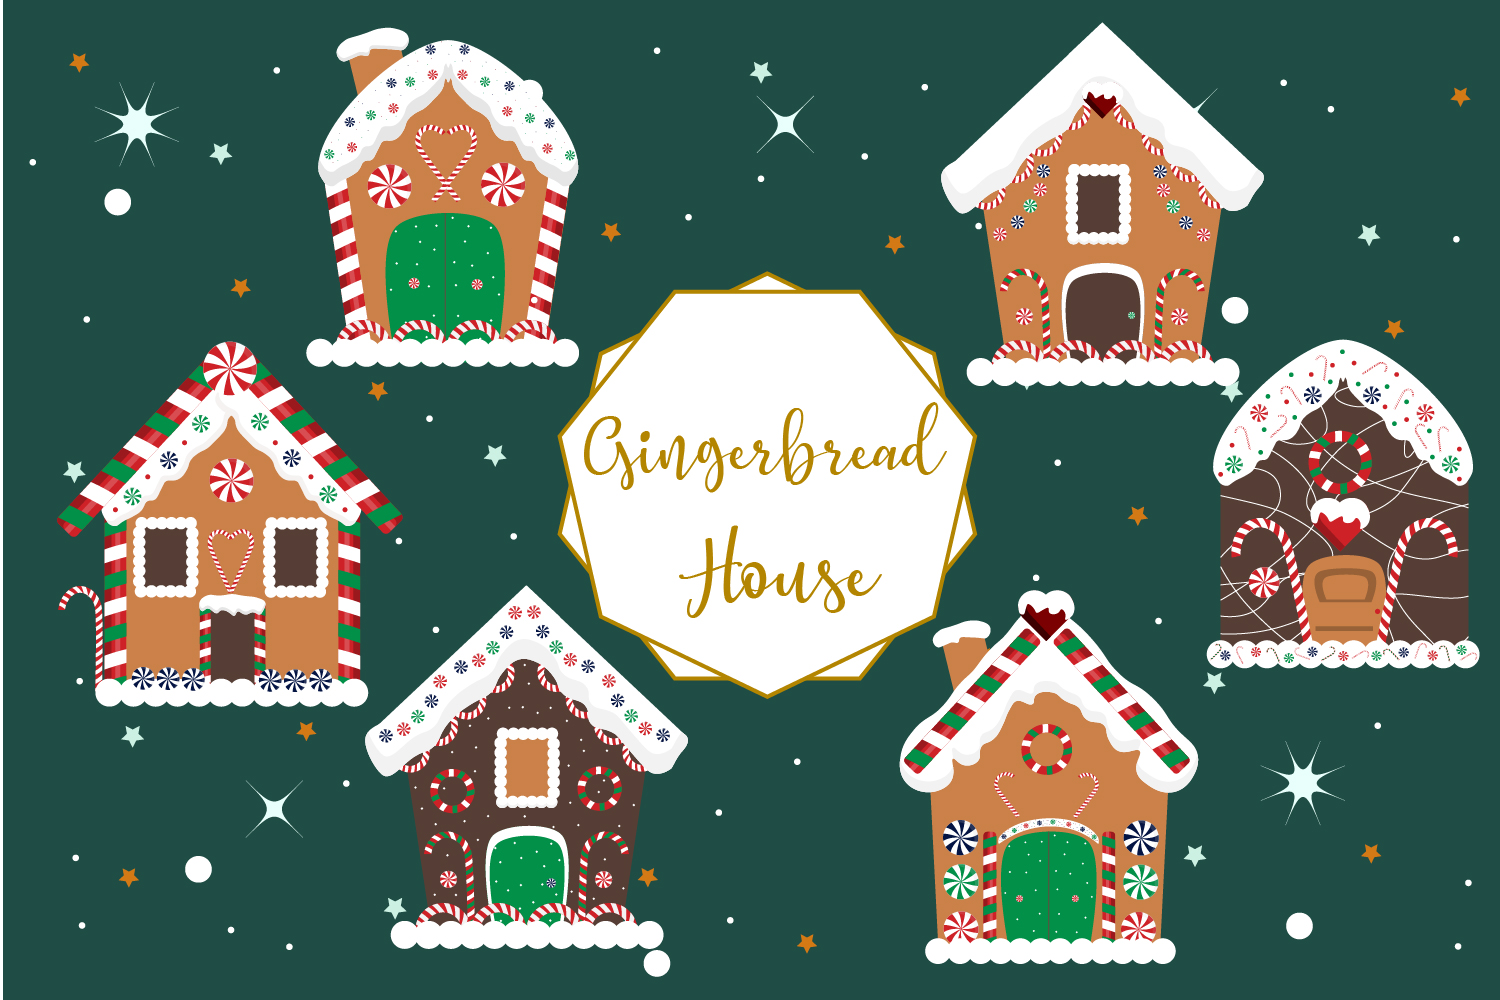 Christmas gingerbread house clipart.